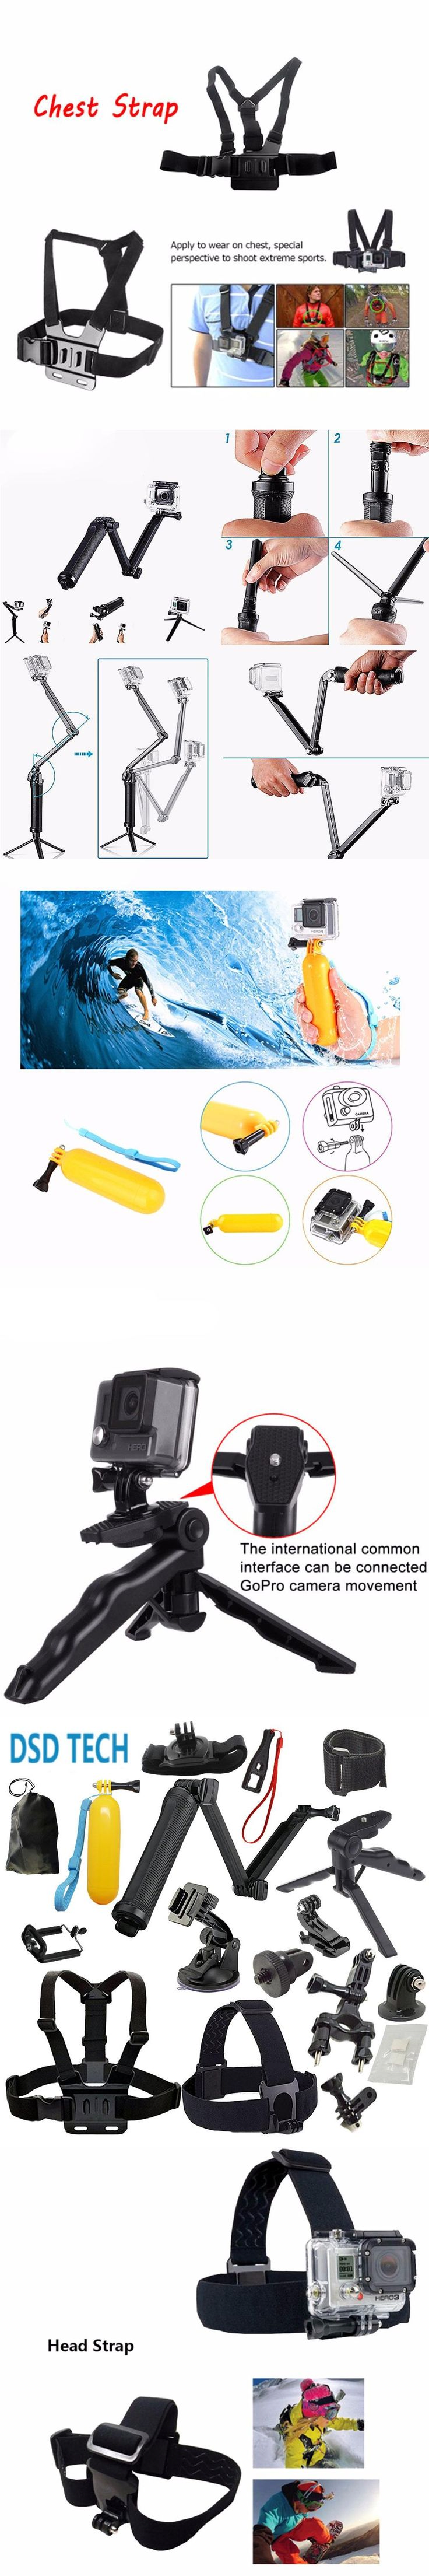 SAQN for gopro 4 Hand Grip and Tabletop Tripod GoPro Camera for go pro 5 4 3+ 3 sjcam sj5000 sj4000 xiaomiyi 2k eken h8 h9 08F